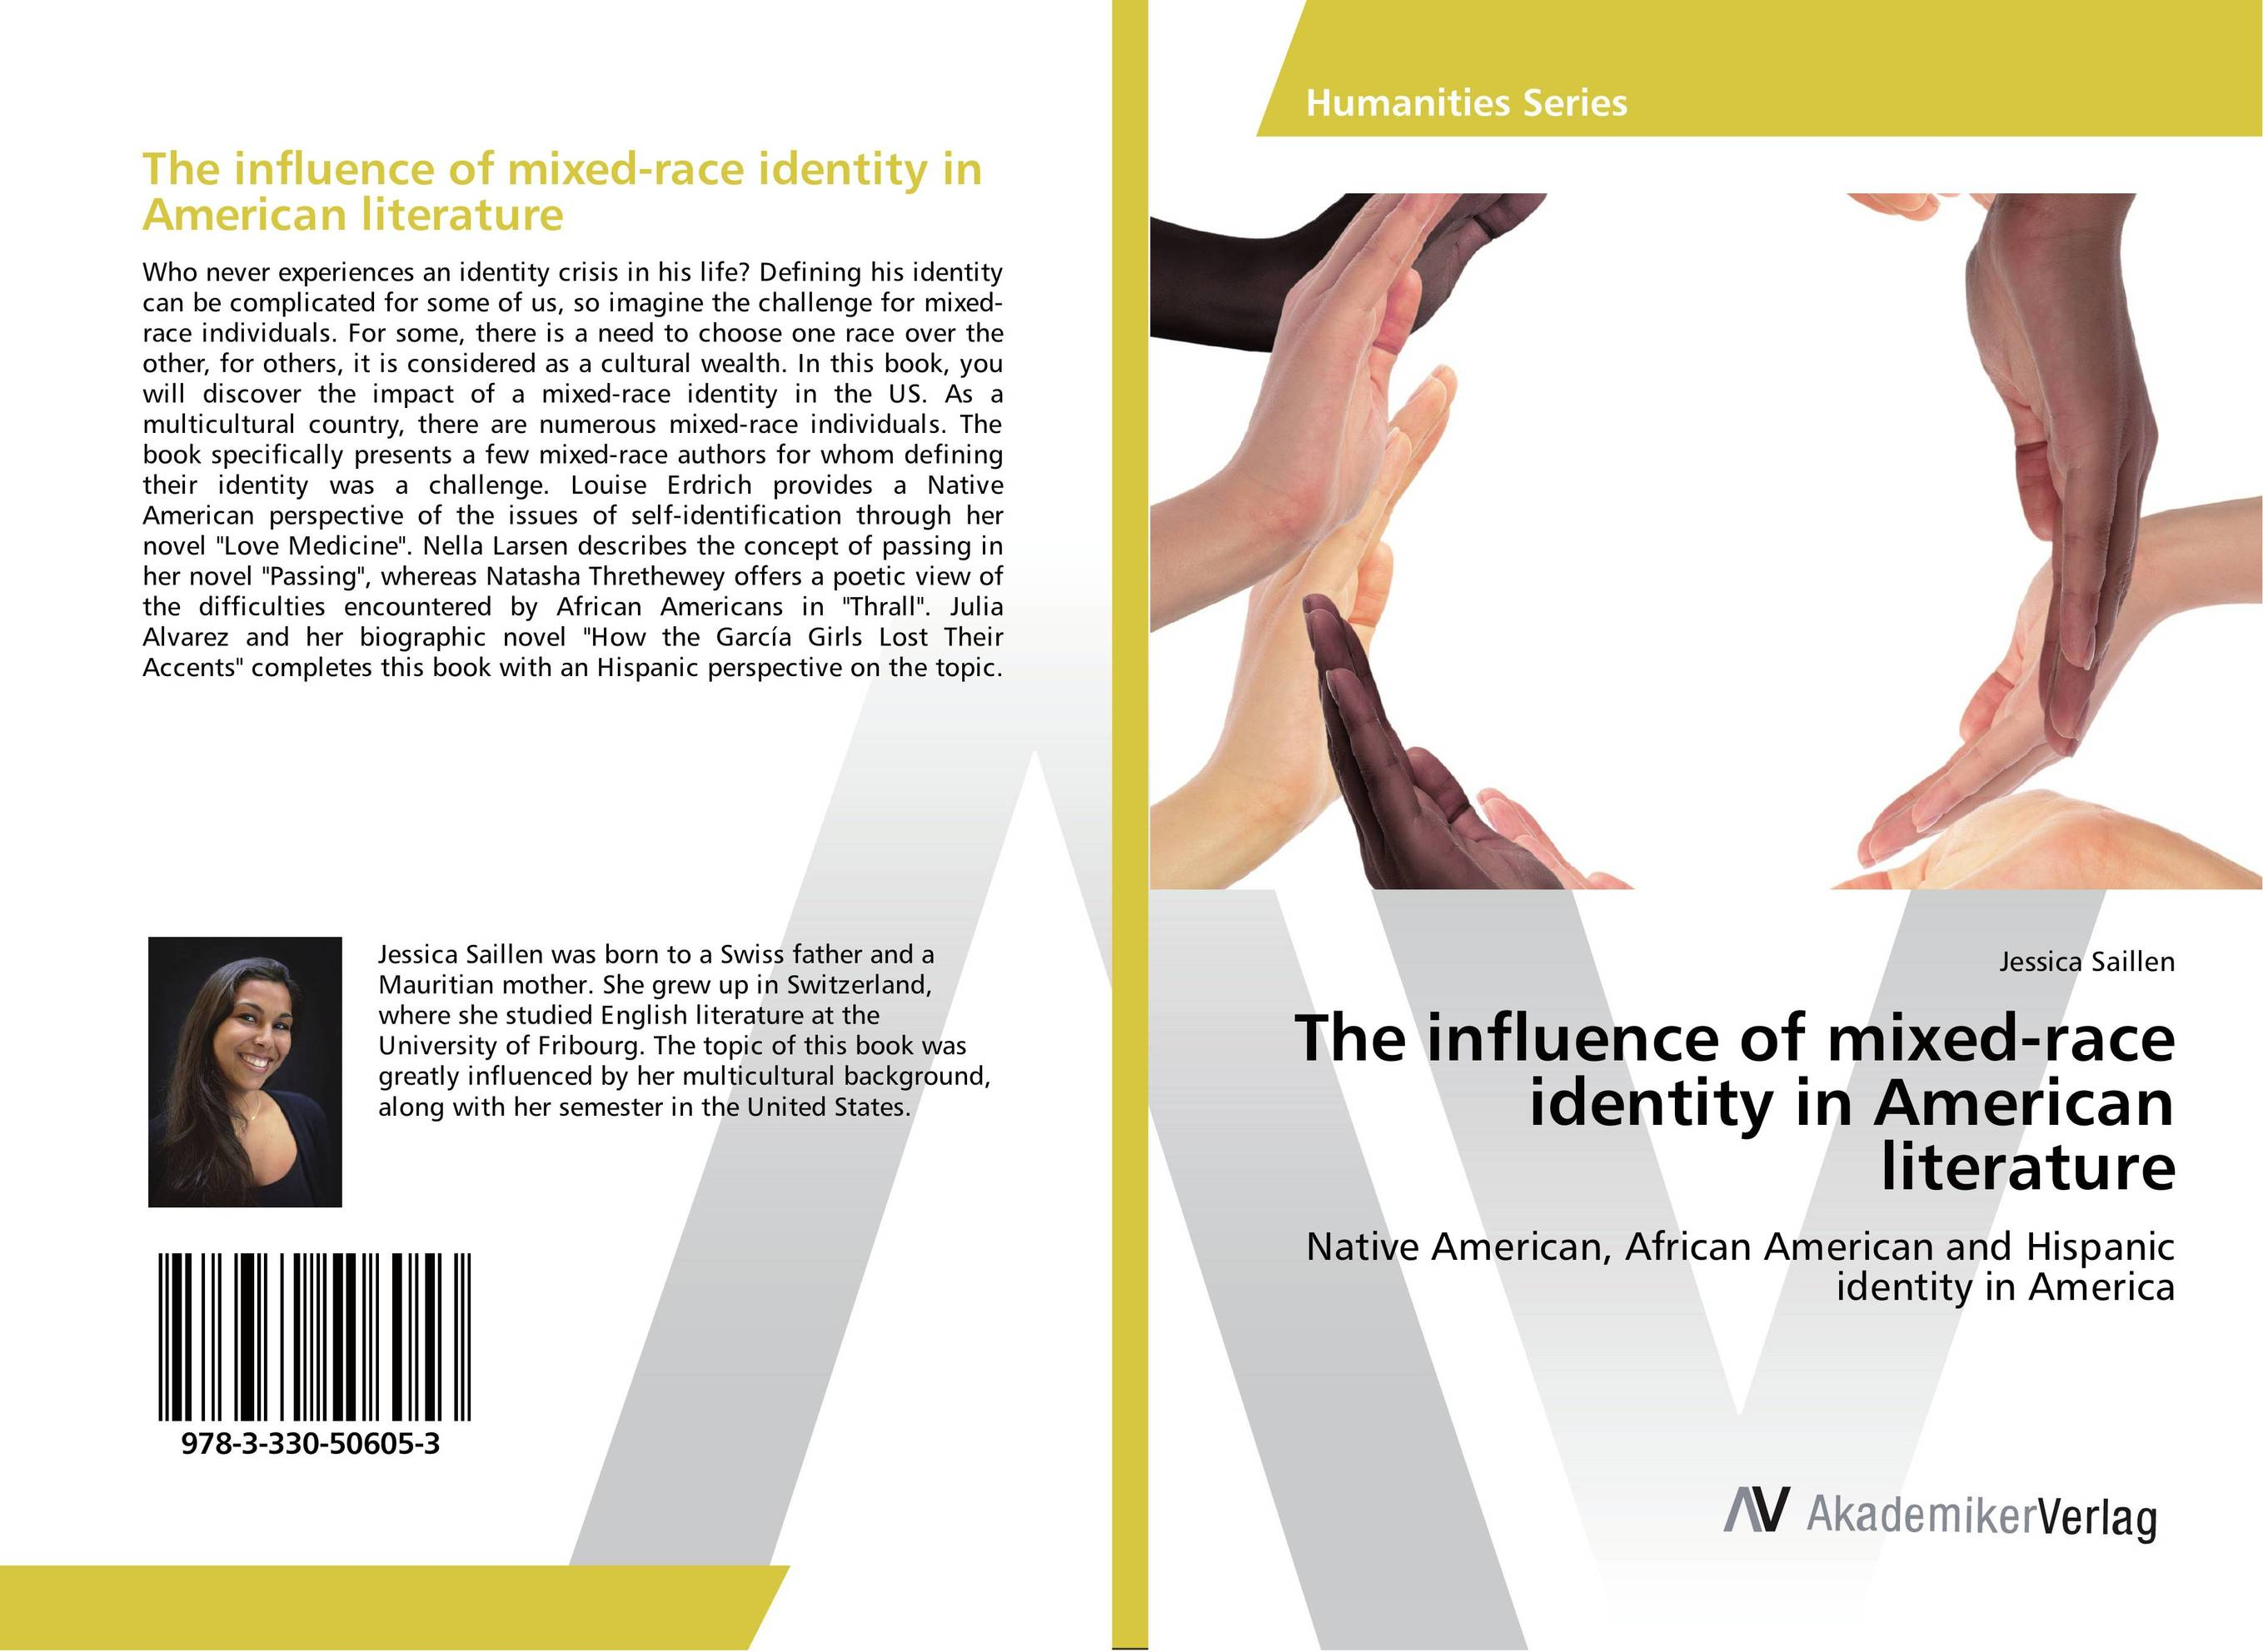 shades of white white kids and racial identity in high school essay Perry's methodological decision to explore racial identity among these populations, which really differ only in levels of exposure to racial minorities, is what makes shades of white a truly outstanding contribution to the existing race and ethnic relations literature.